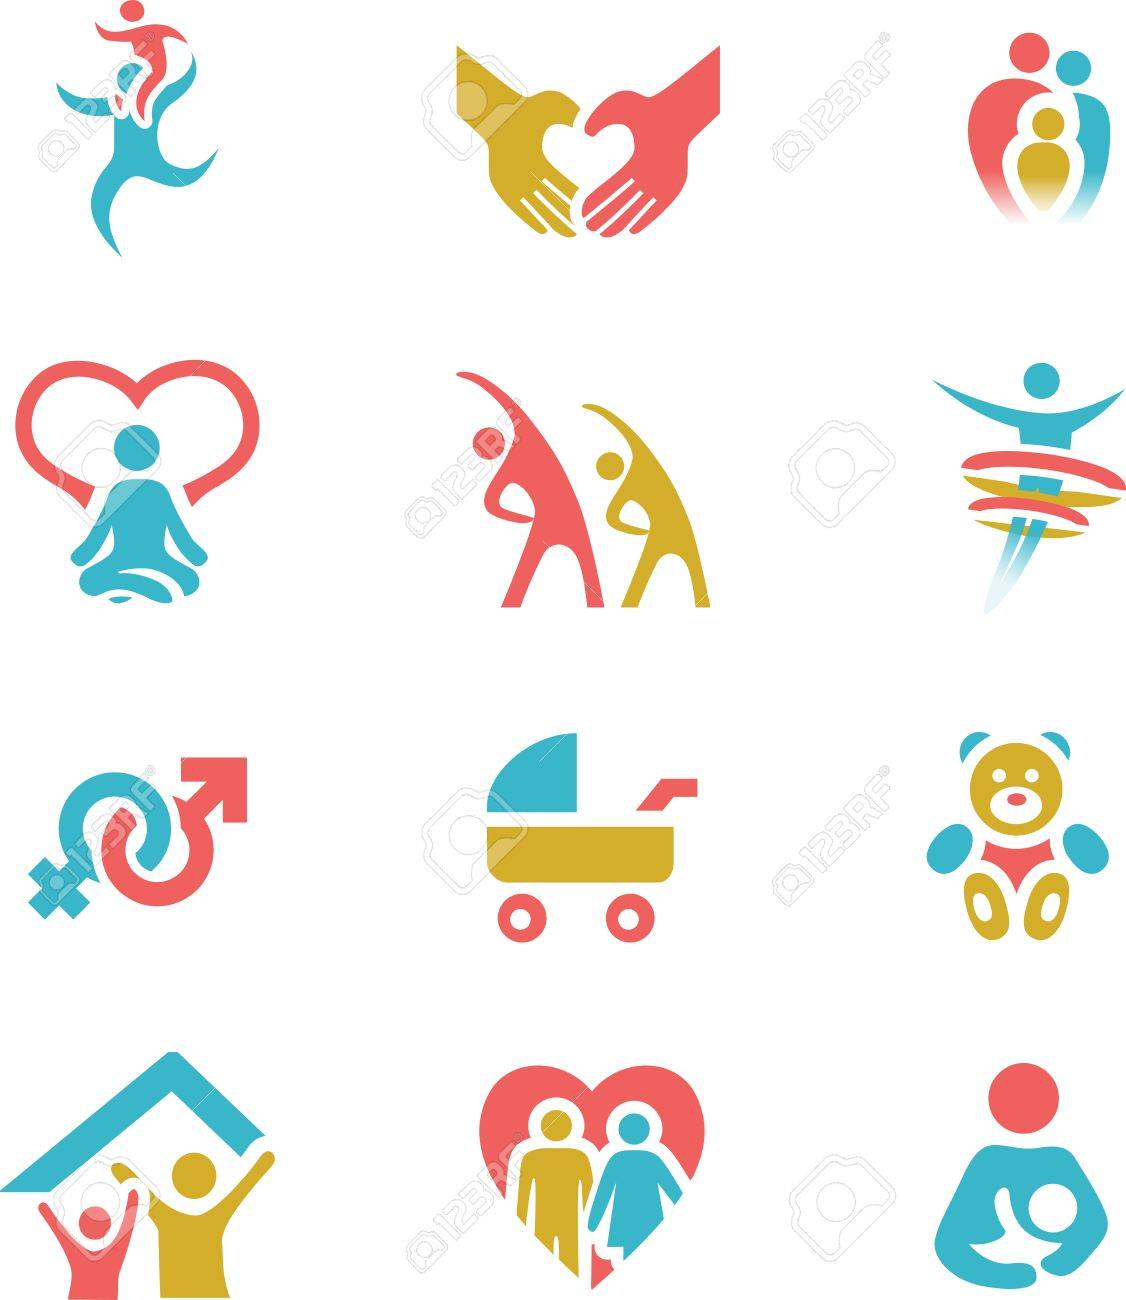 Colorful Family Wellness and Health Icon Set Vector Illustration Stock Vector - 18406658